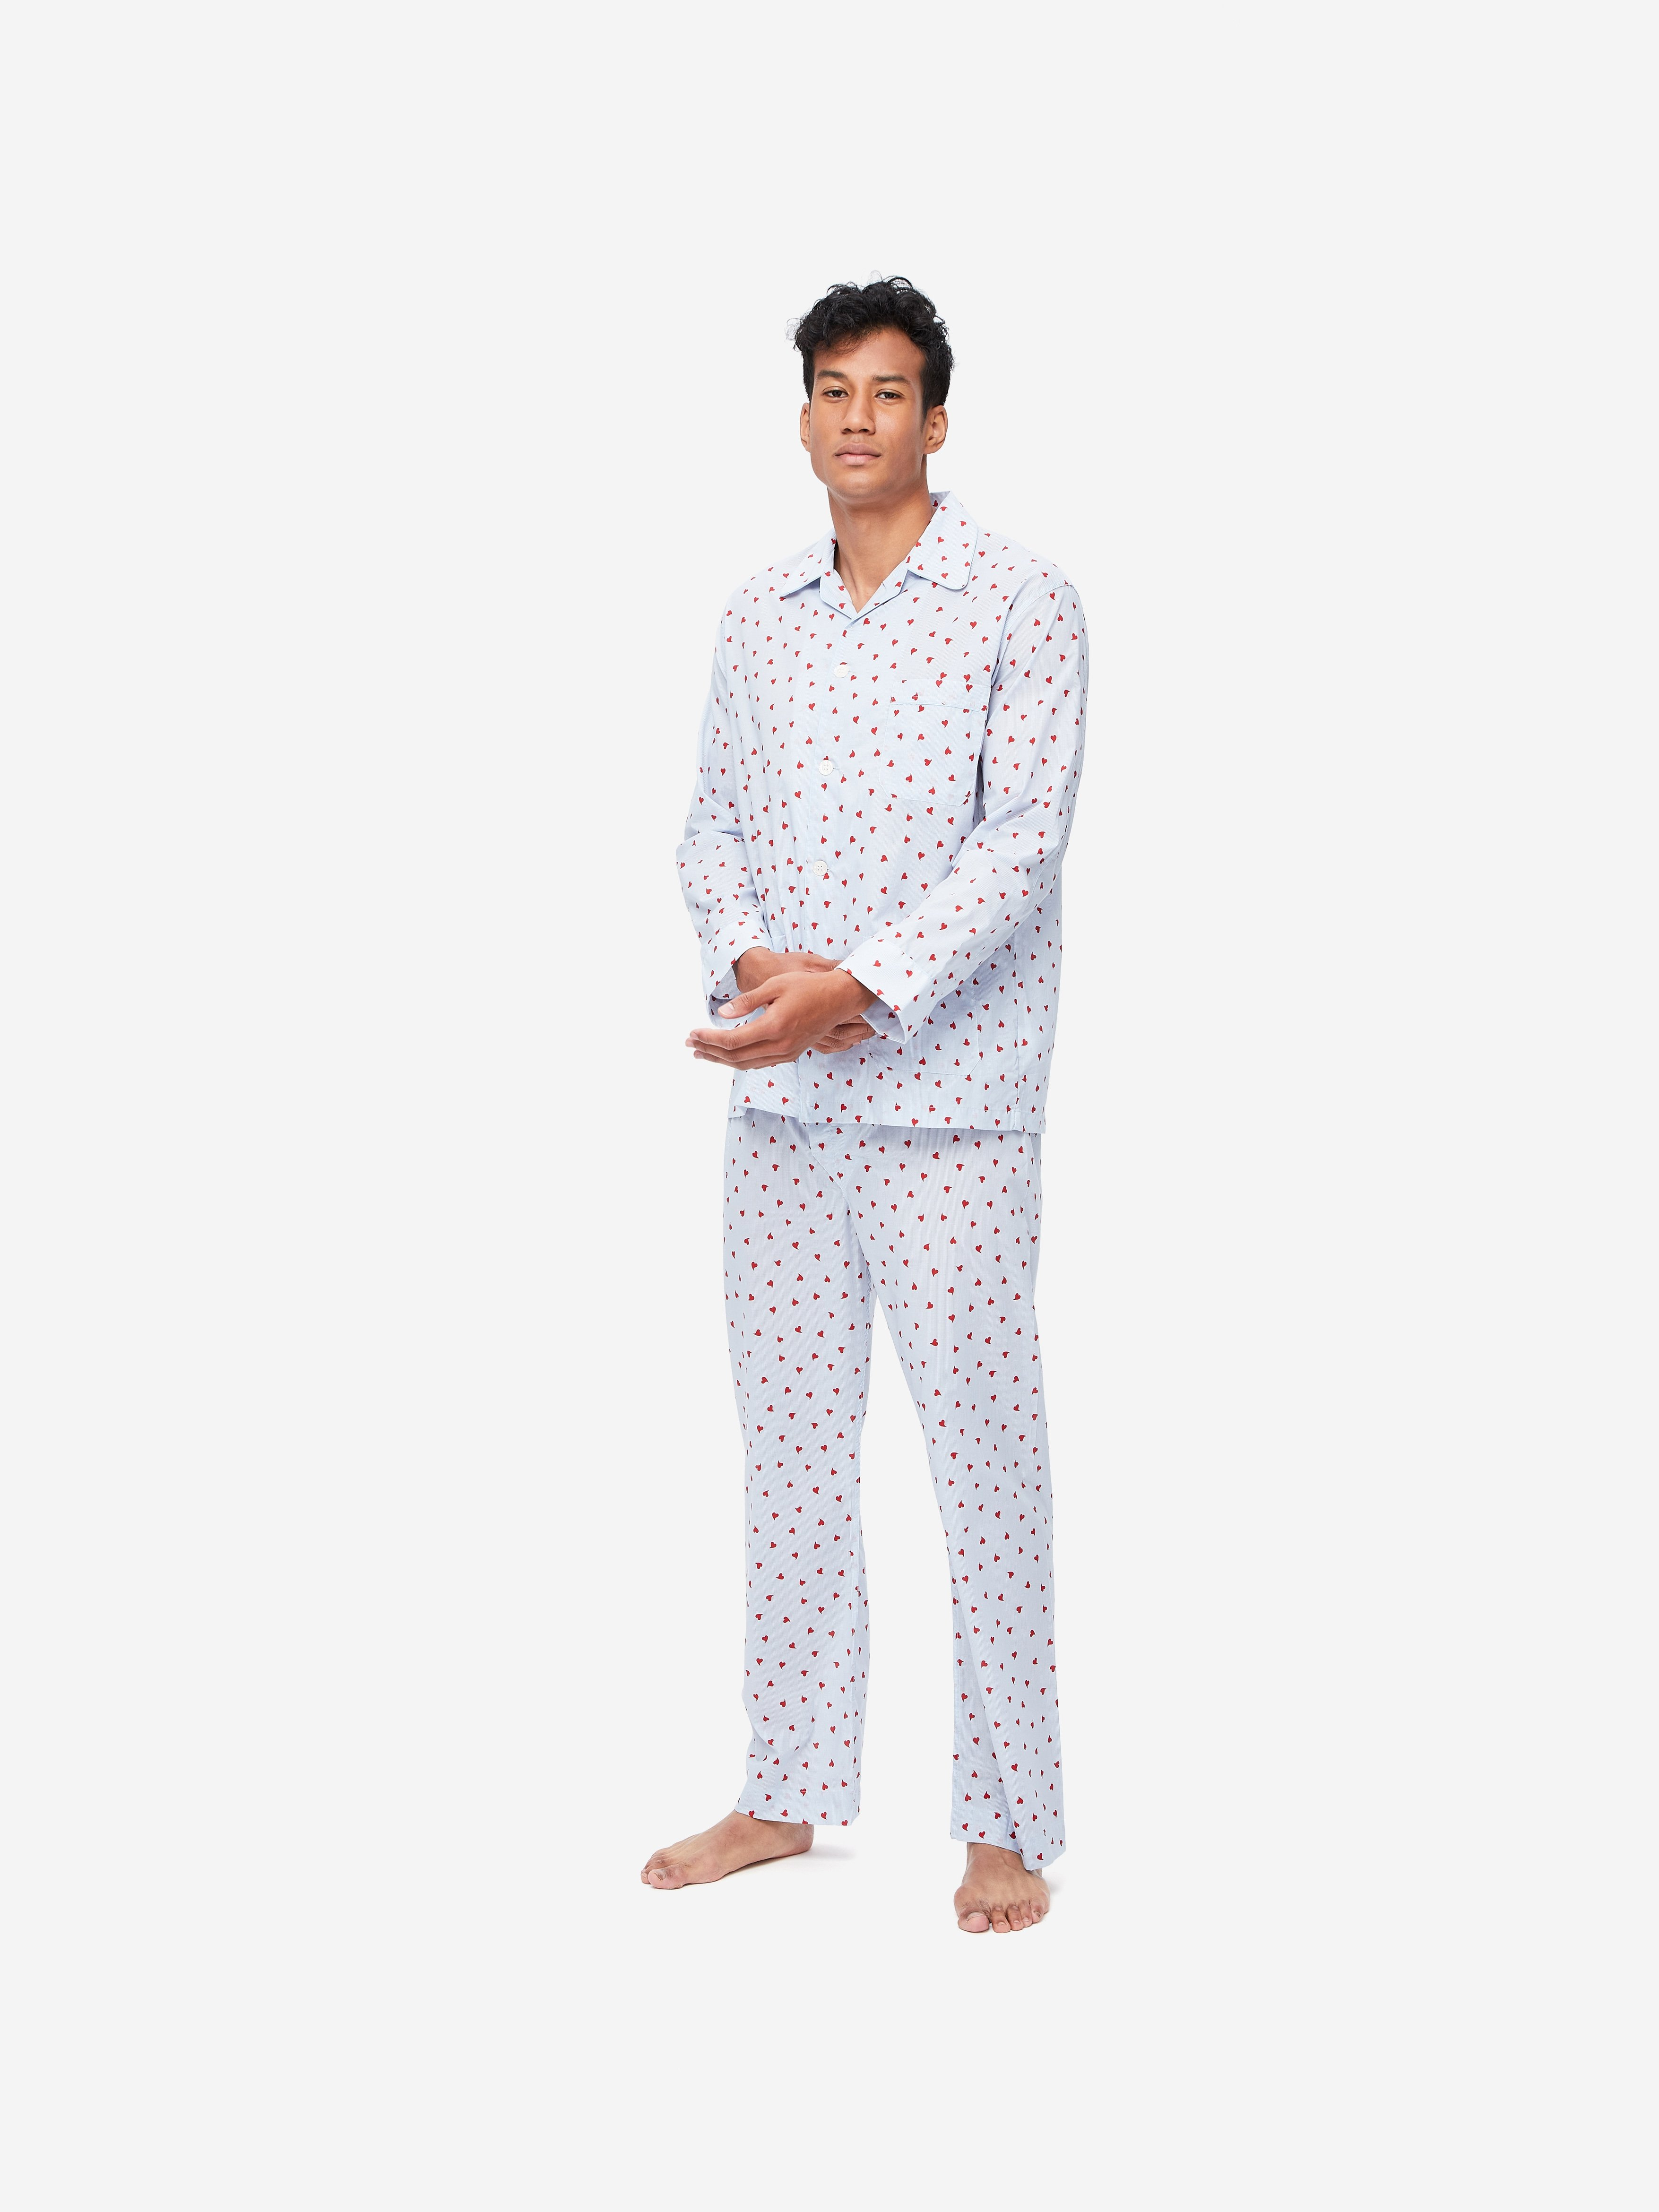 Men's Classic Fit Piped Pyjamas Nelson 75 Cotton Batiste Blue